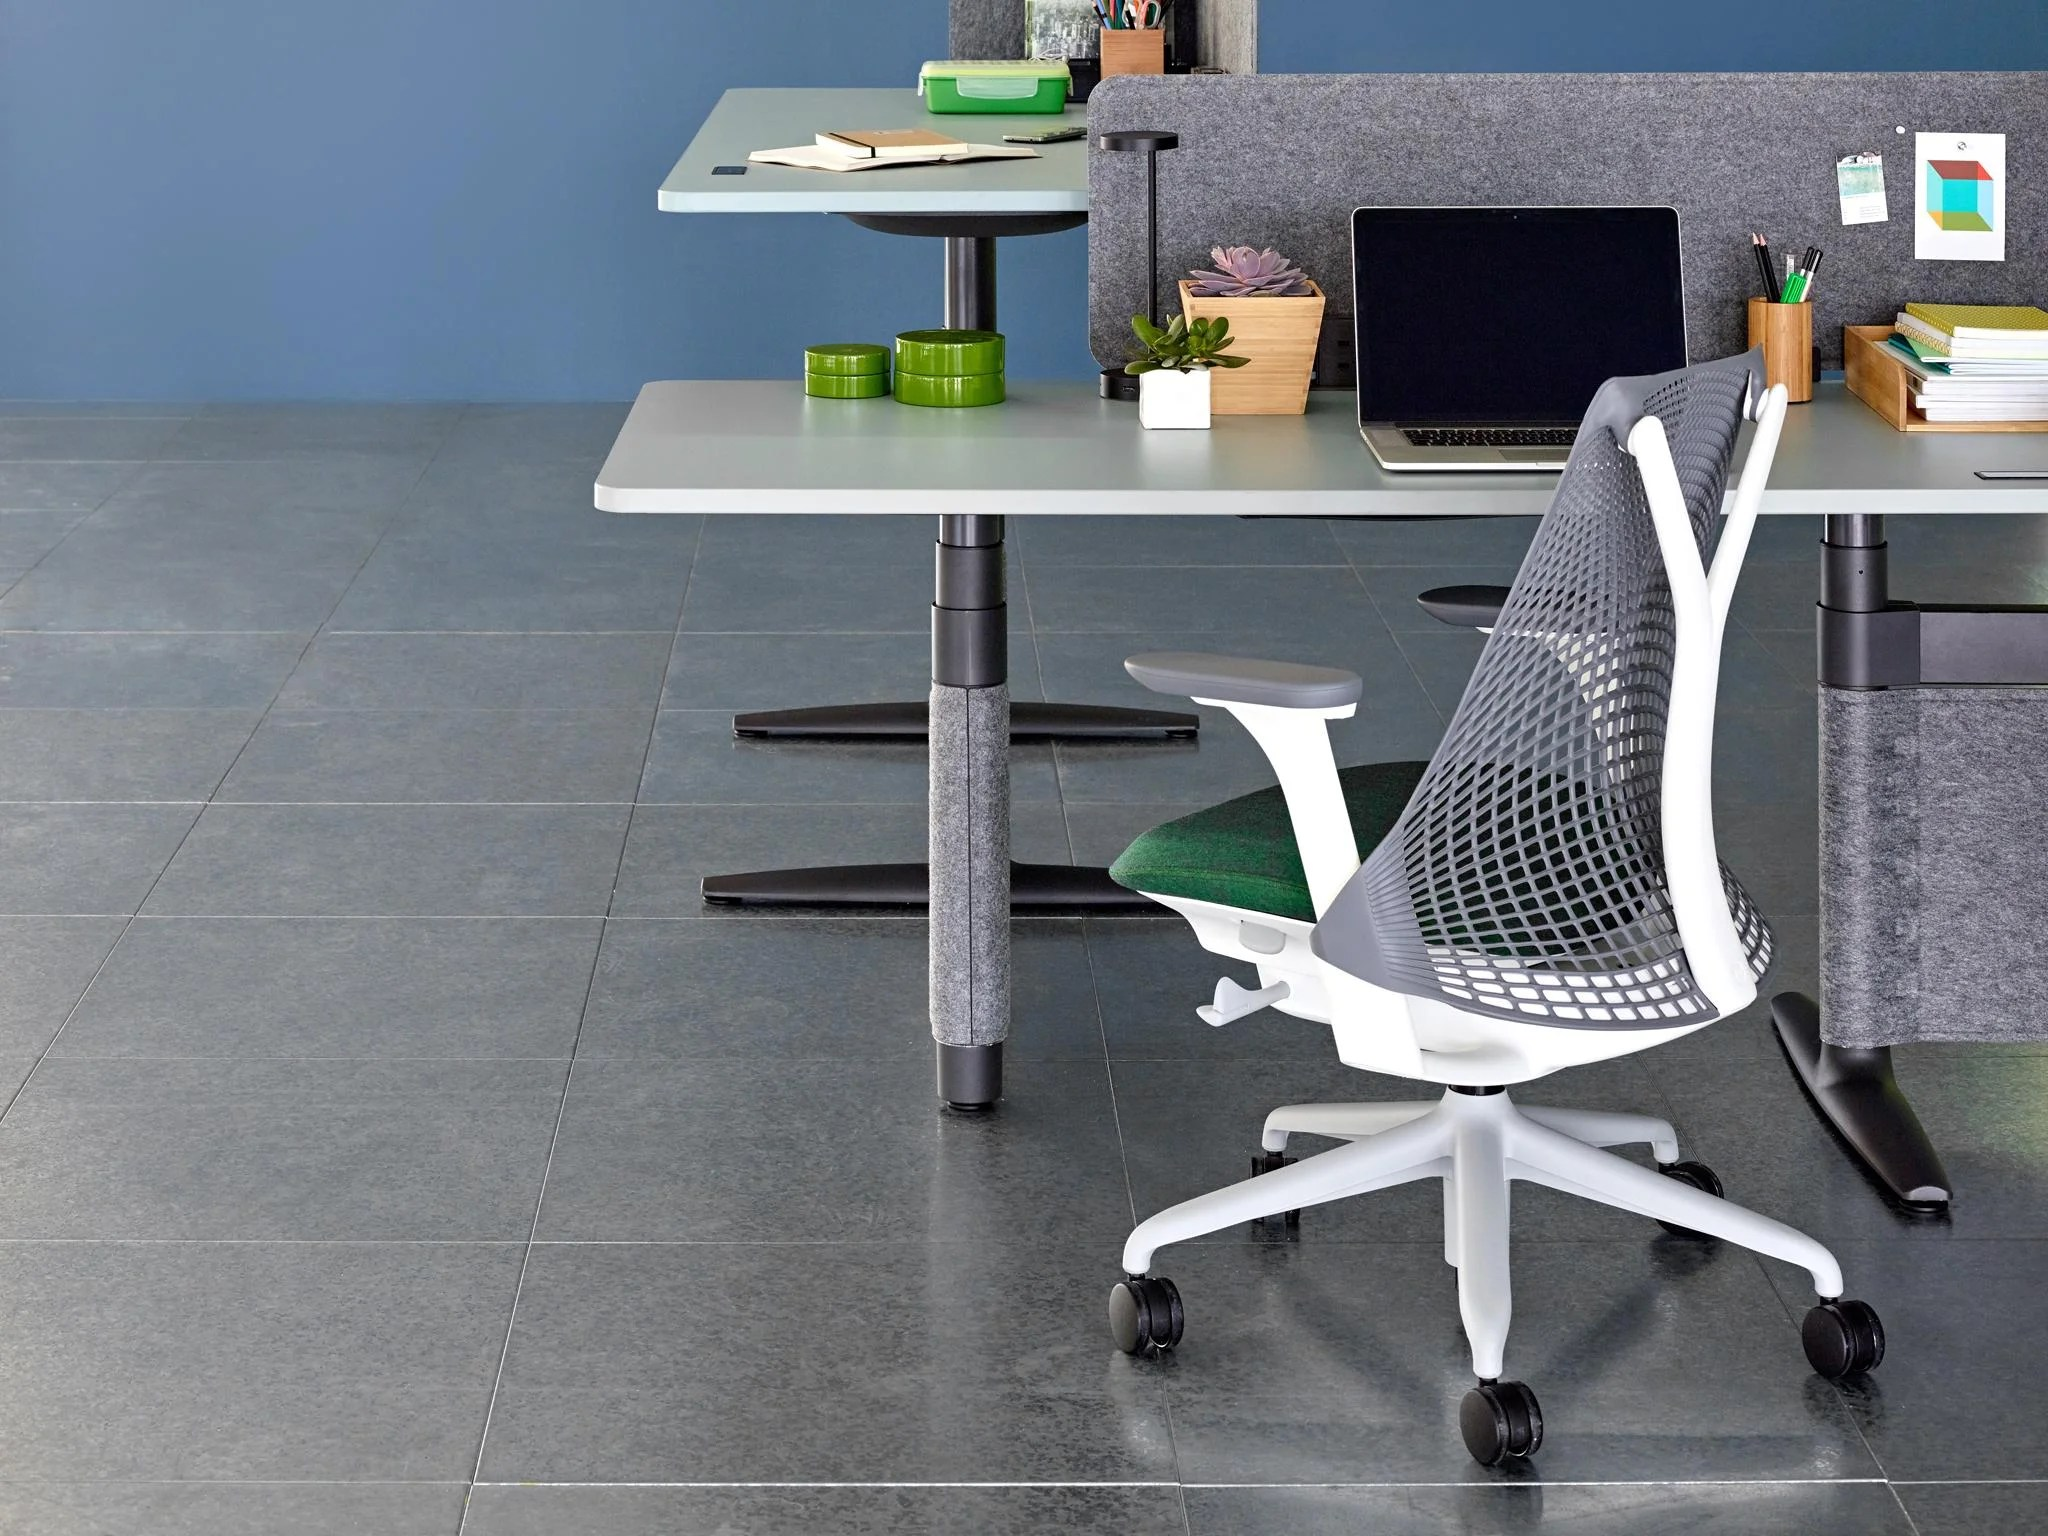 Ergonomic Office Chairs 9 Best Ergonomic Office Chairs The Independent